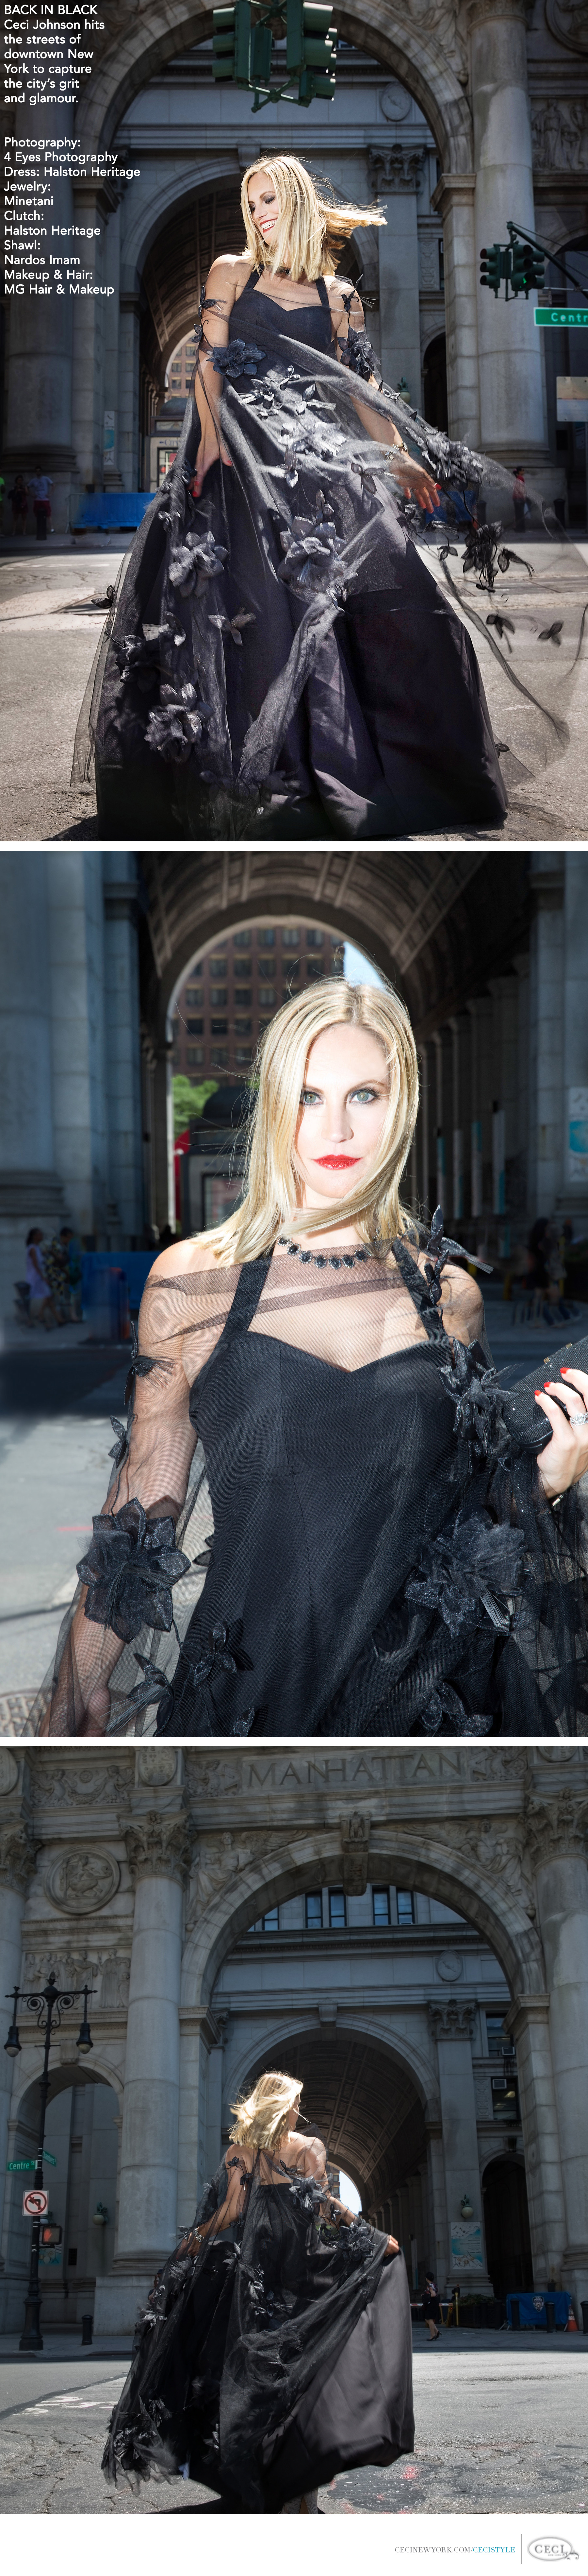 Ceci Johnson of Ceci New York - Get inspired by our dramatic take on New York sophistication.